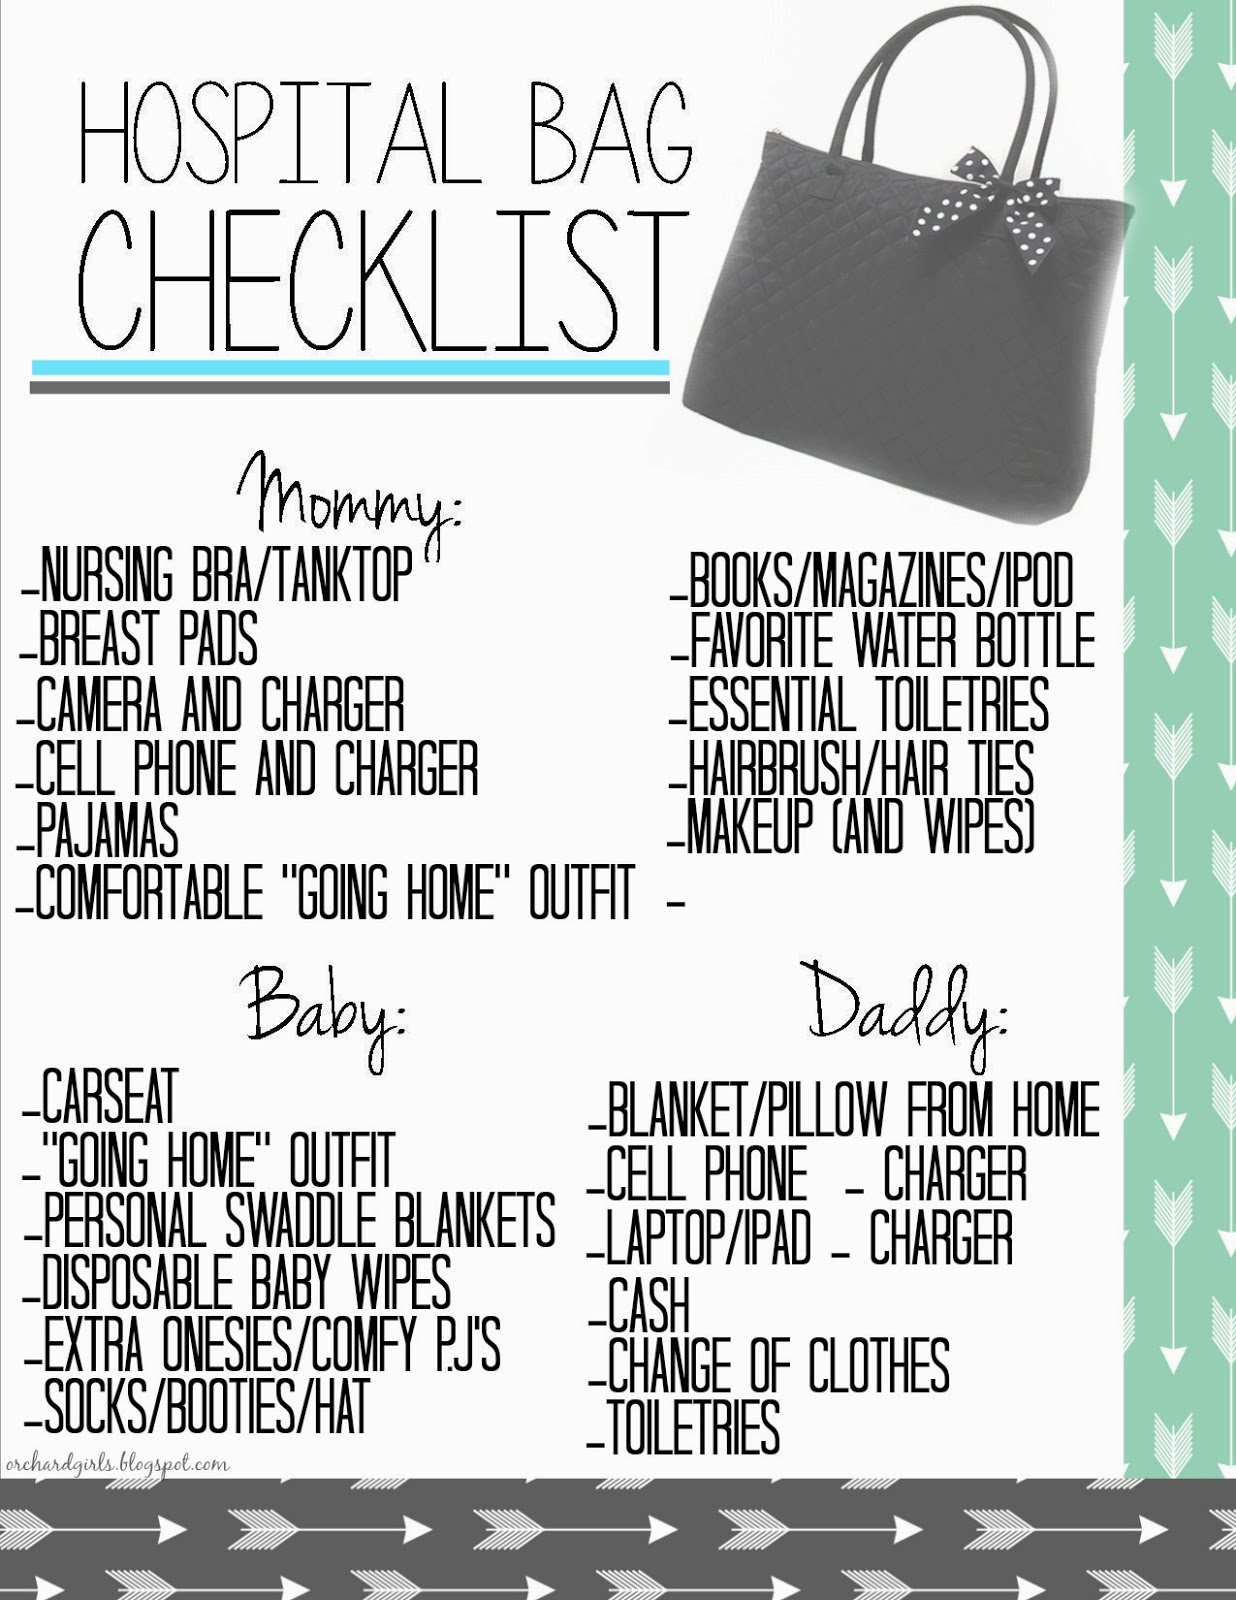 FREE Hospital Bag Checklist Printable #hospitalbag #pregnancy